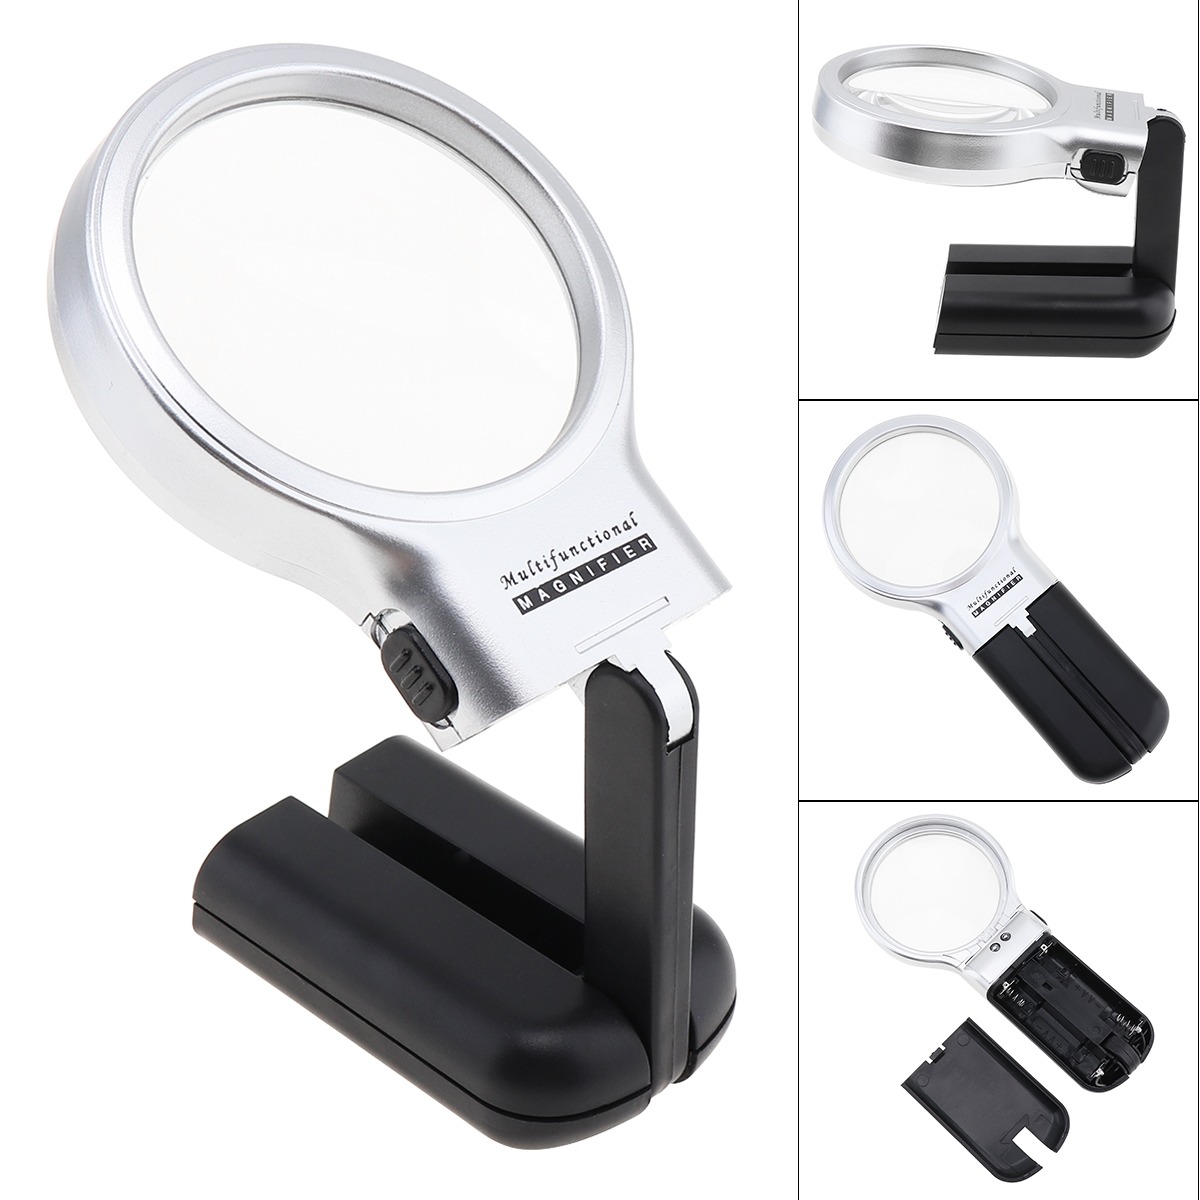 Multifunctional Desktop Handheld Magnifier Jewelry Loupe Adjustable Angle Reading Watch Repair Magnifying Glass LED Desk Lamp